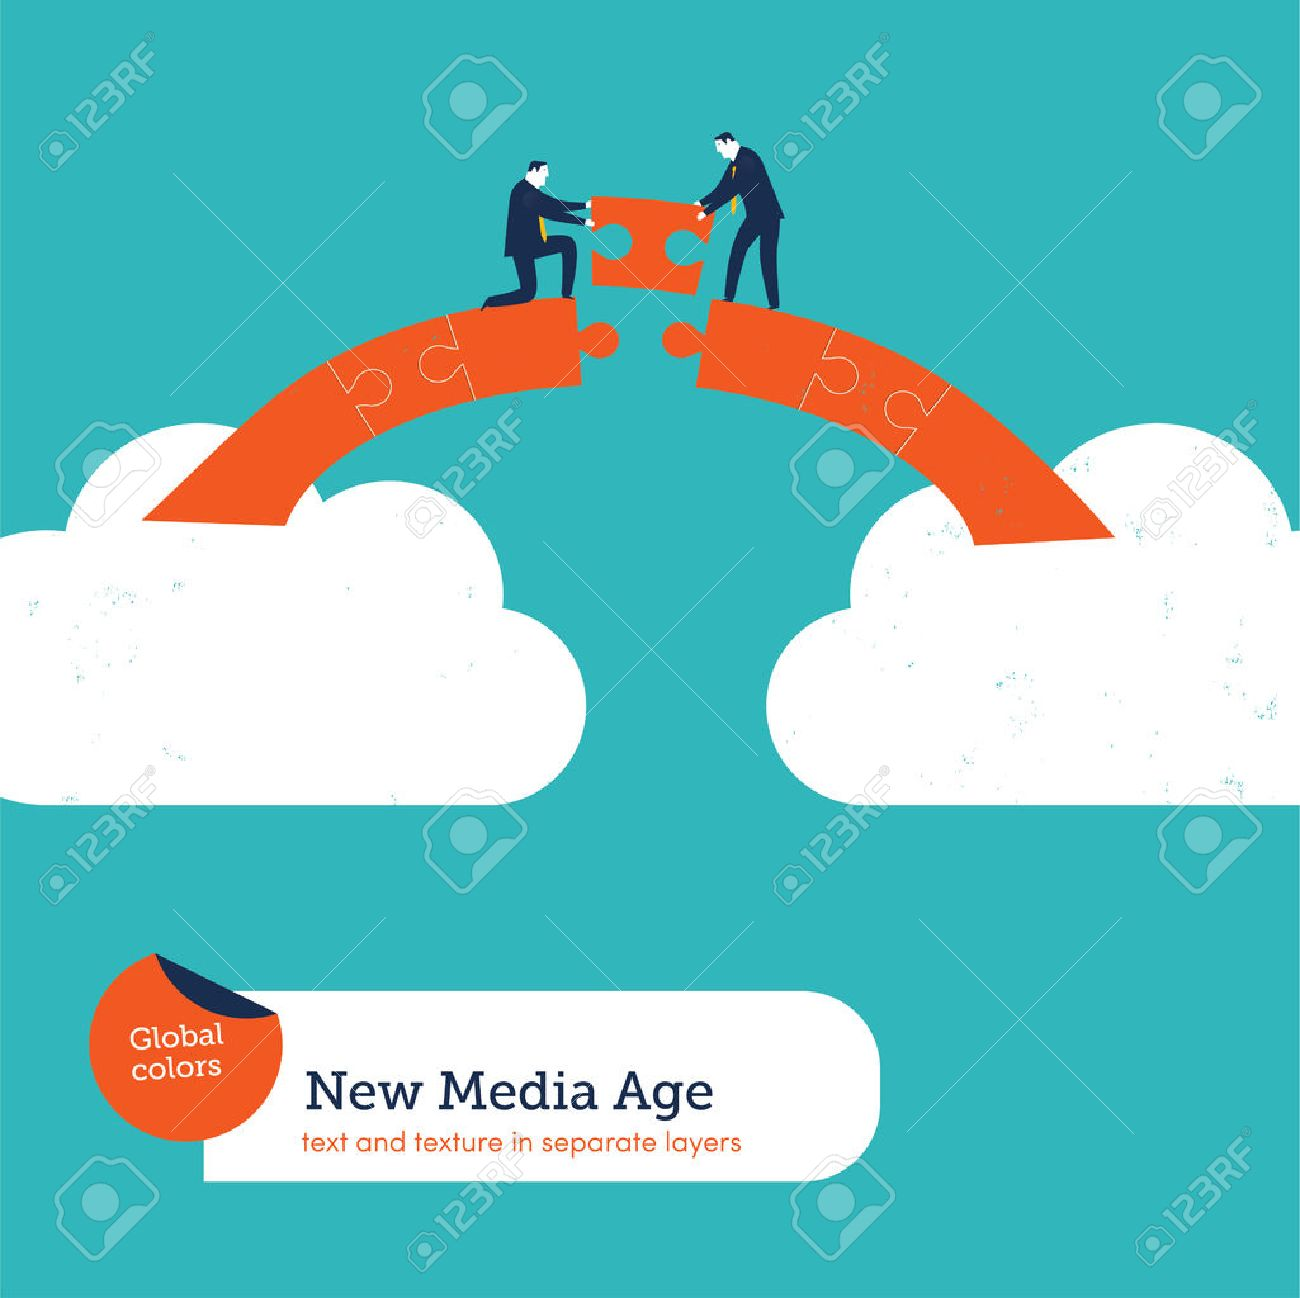 Businessmen building a puzzle bridge from cloud to cloud. Vector illustration Eps10 file. Global colors. Text and Texture in separate layers. - 35308976